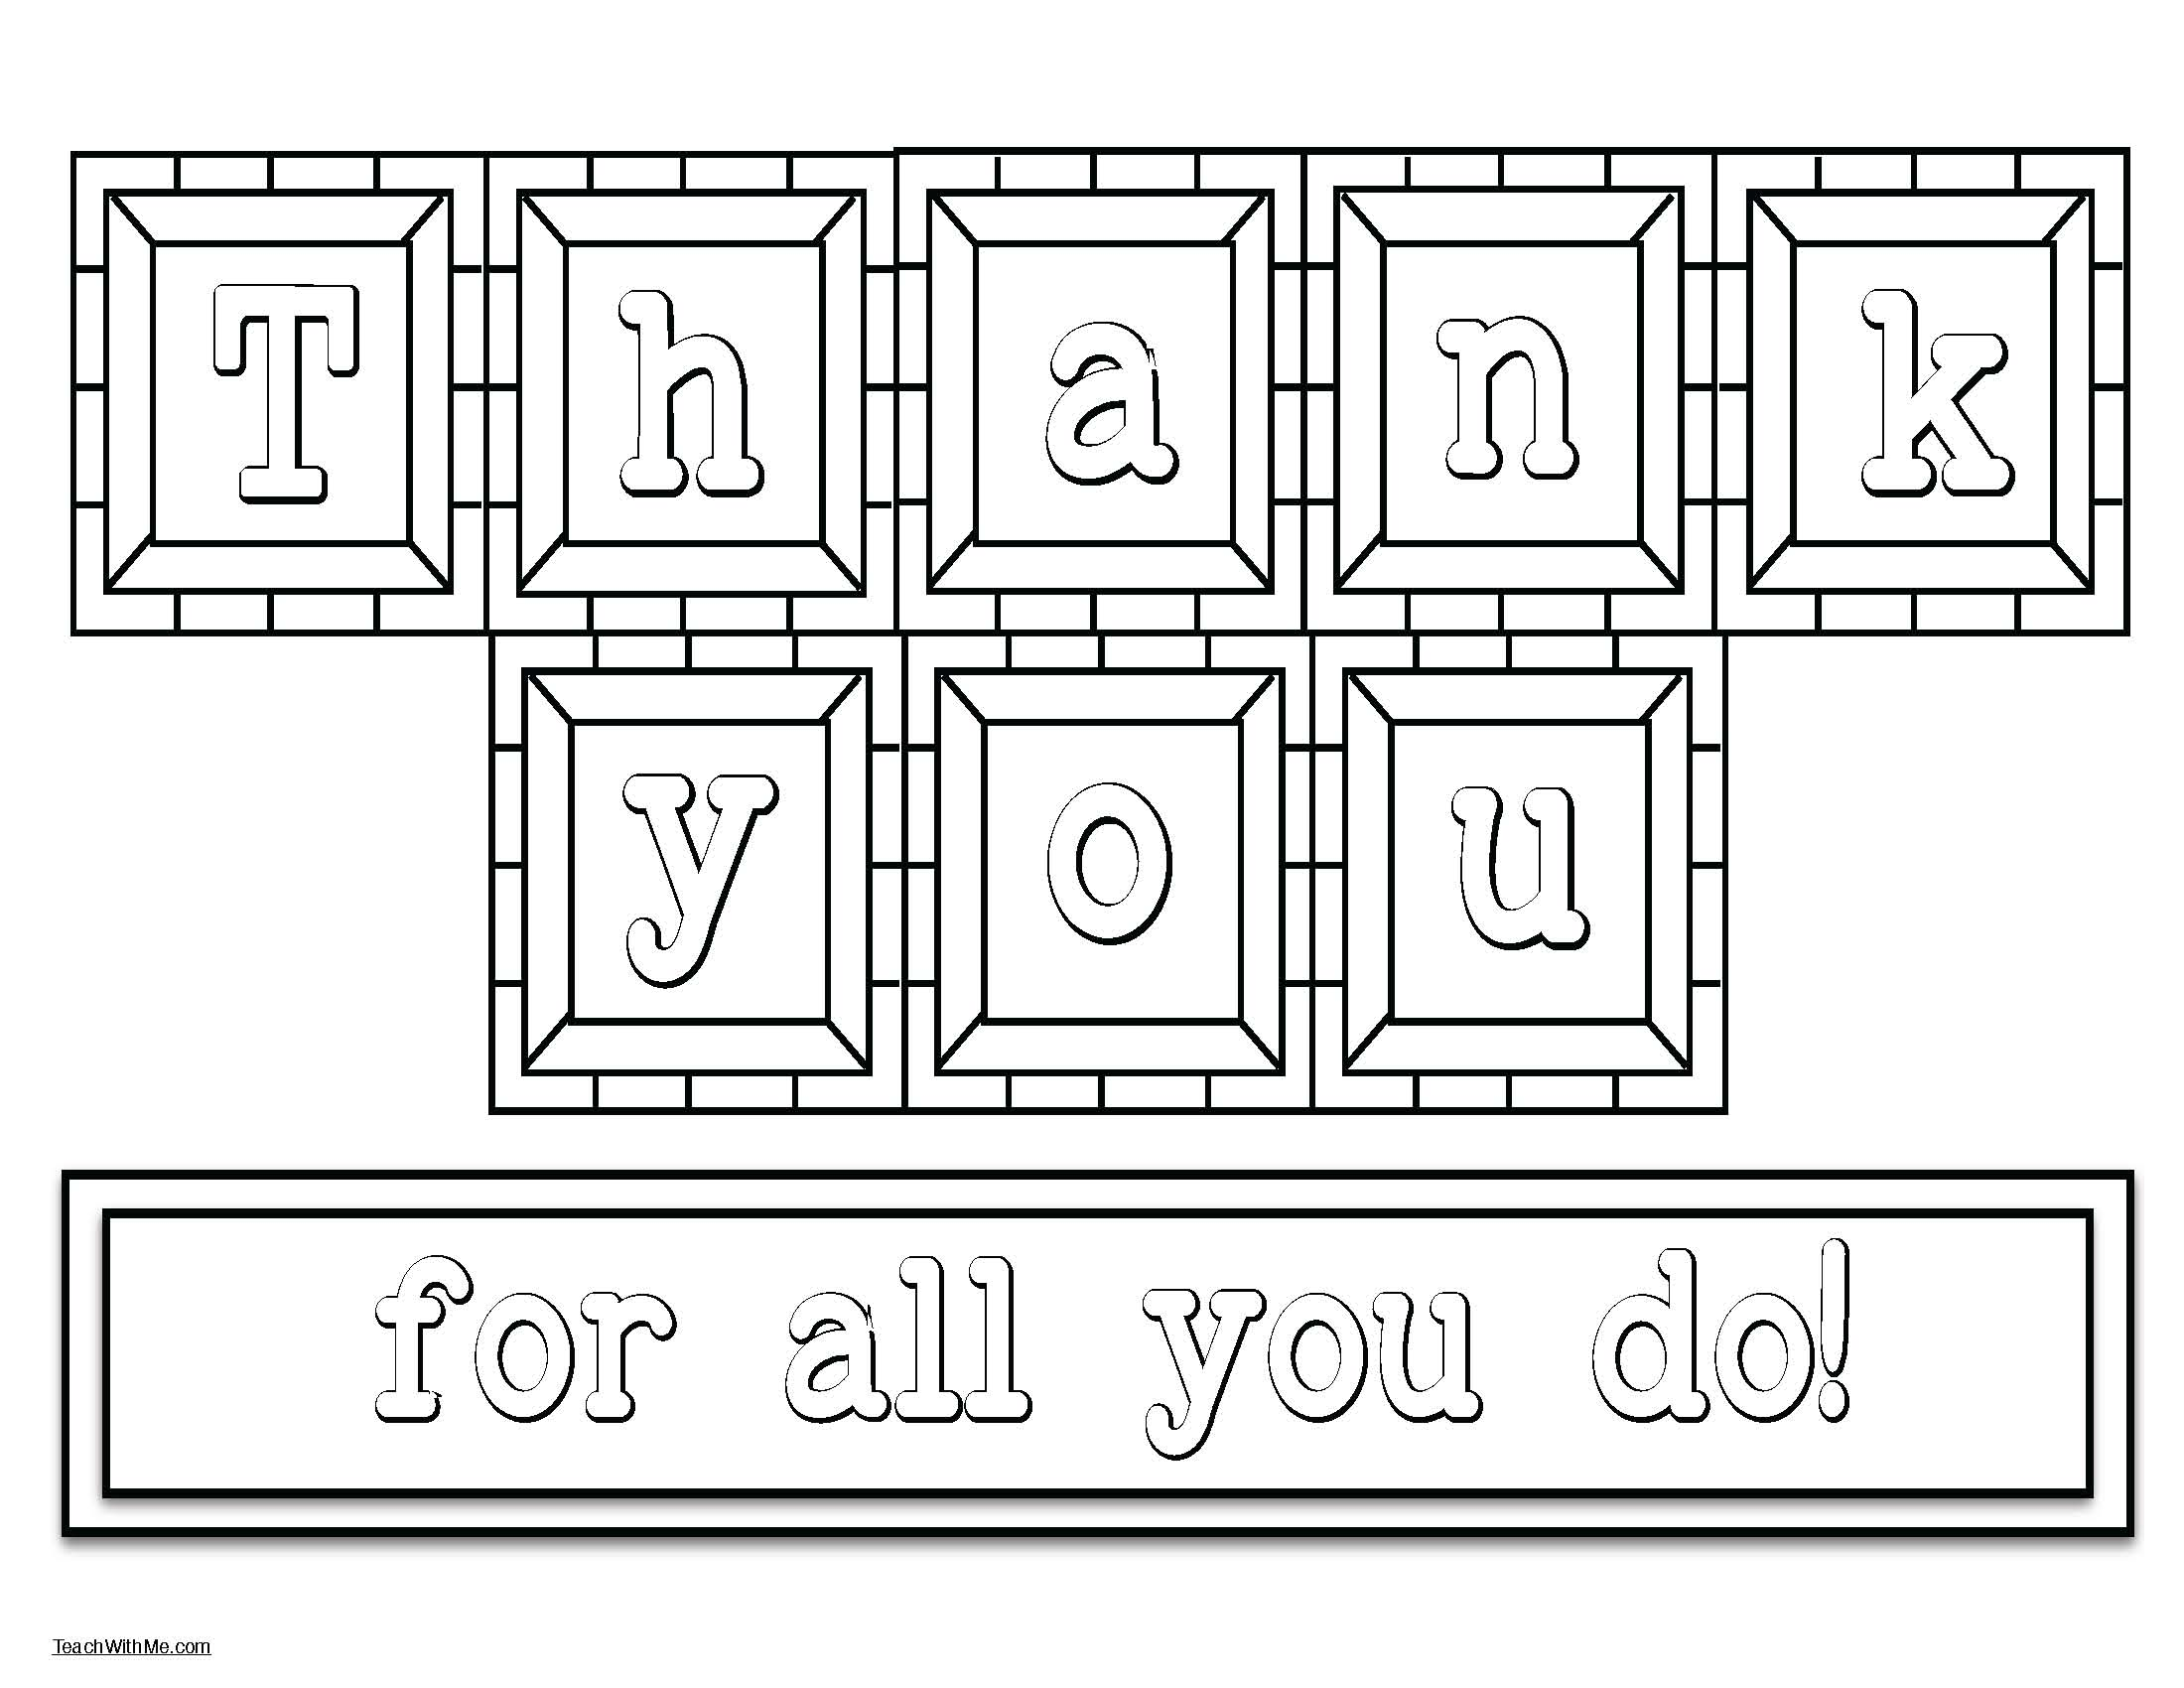 teacher appreciation ideas, teacher appreciation cards, letter tiles that spell out thank you, end of the year activities, end of the year crafts, thank you cards, end of the year thank you cards, end of the year teacher appreciation, bus driver card,